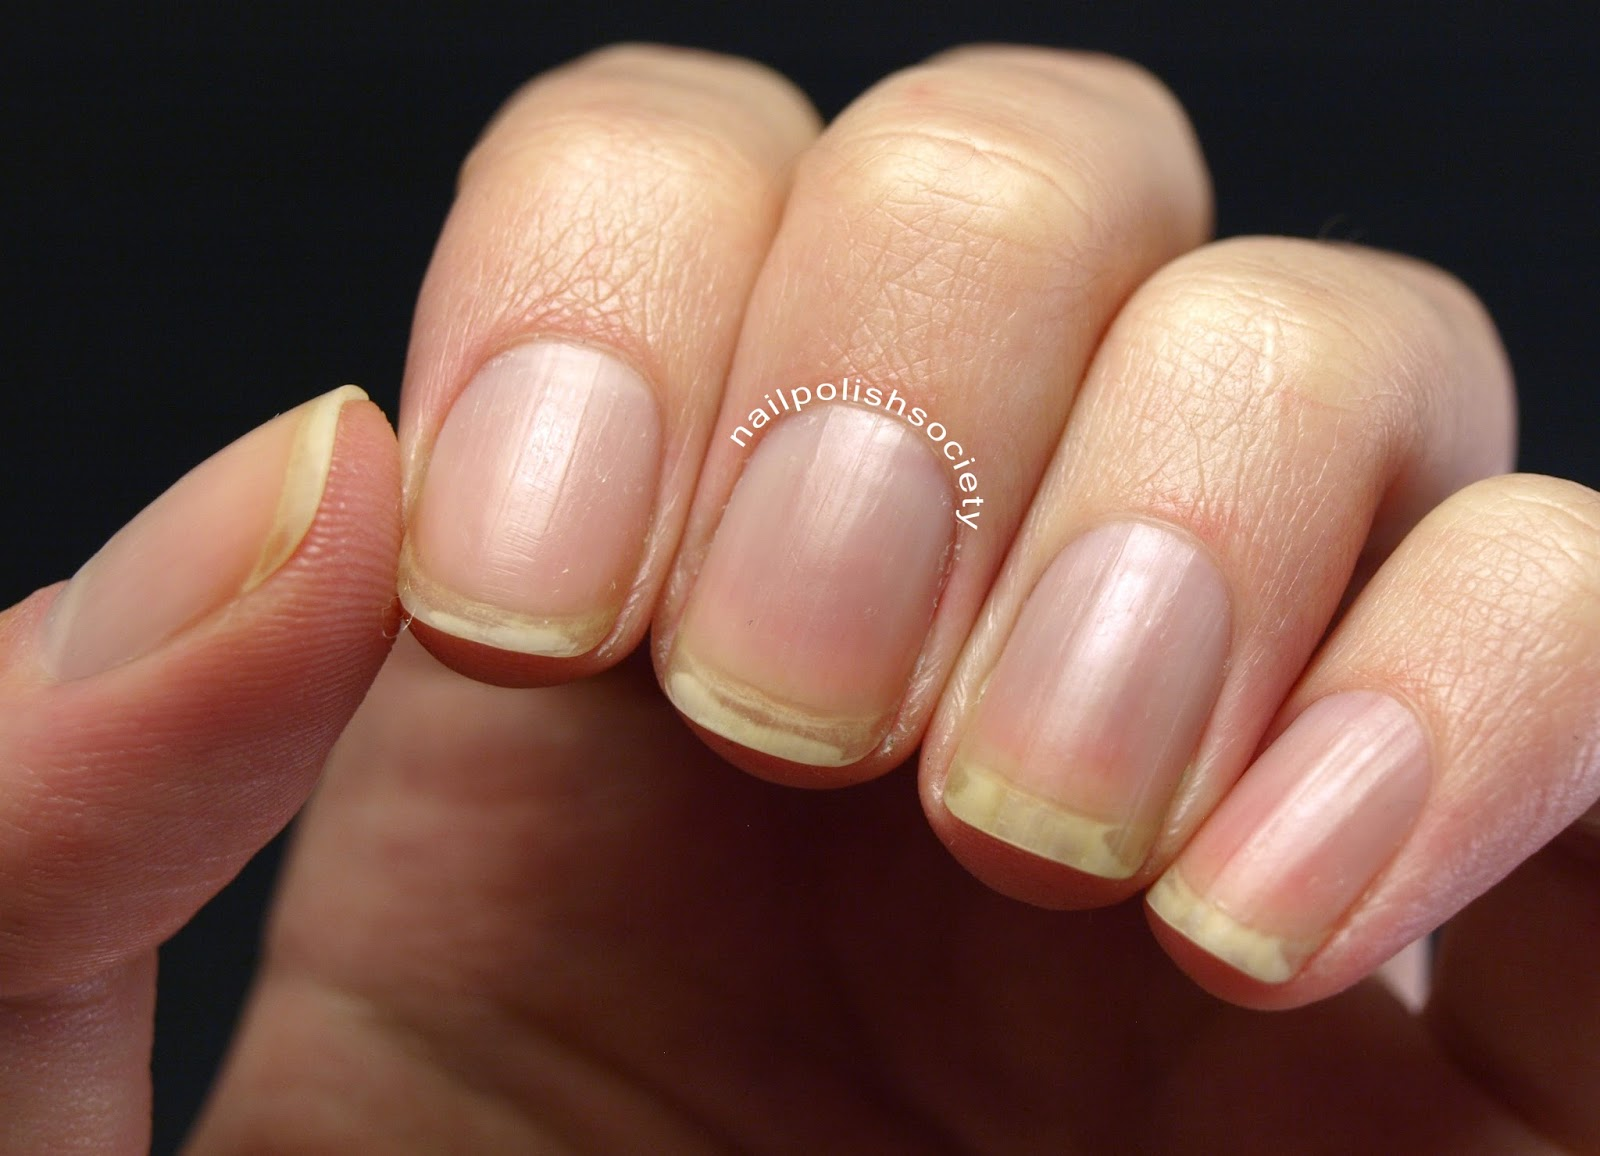 Nail Polish Society: Lent Manicure... My Very Naked Nails and Nail Care